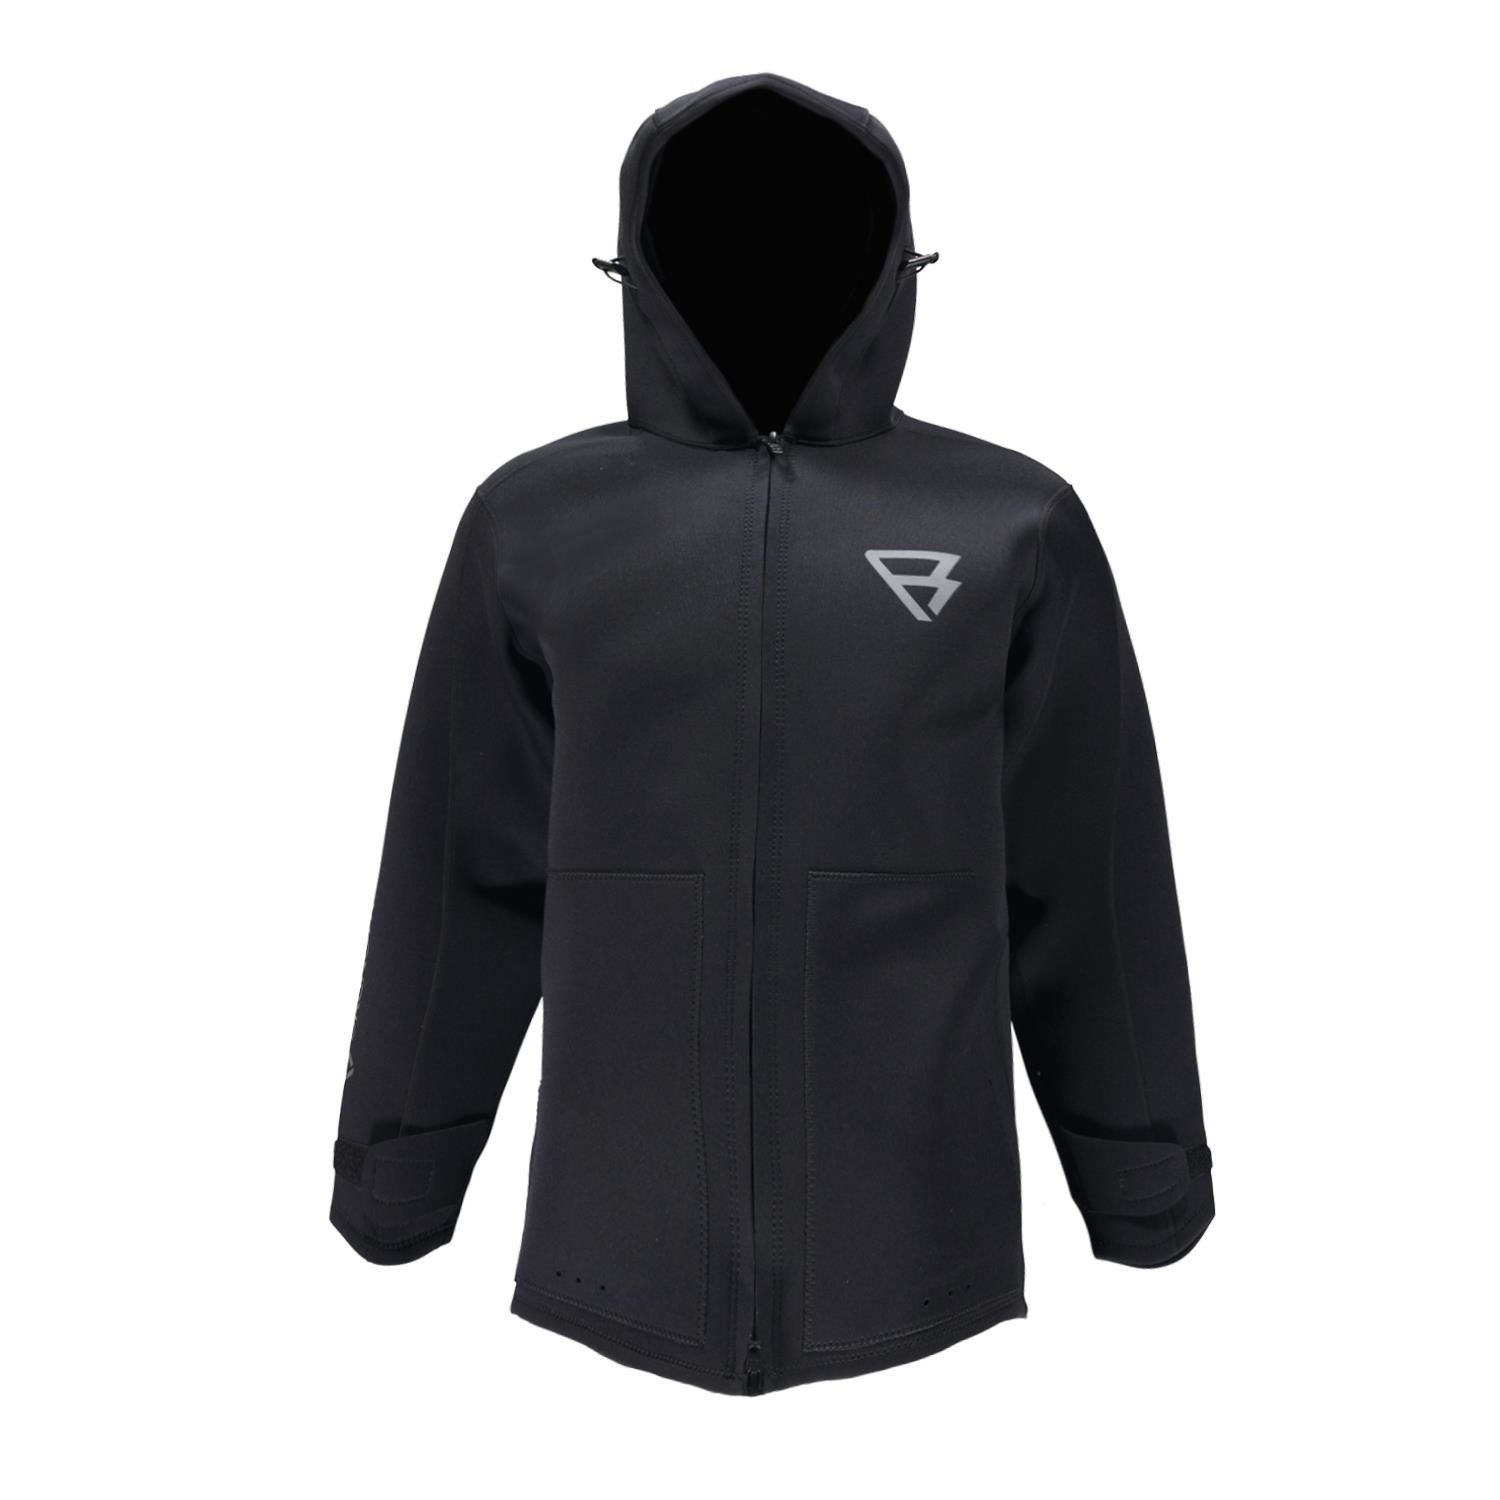 2018 Brunotti Jibe Jacket - Black